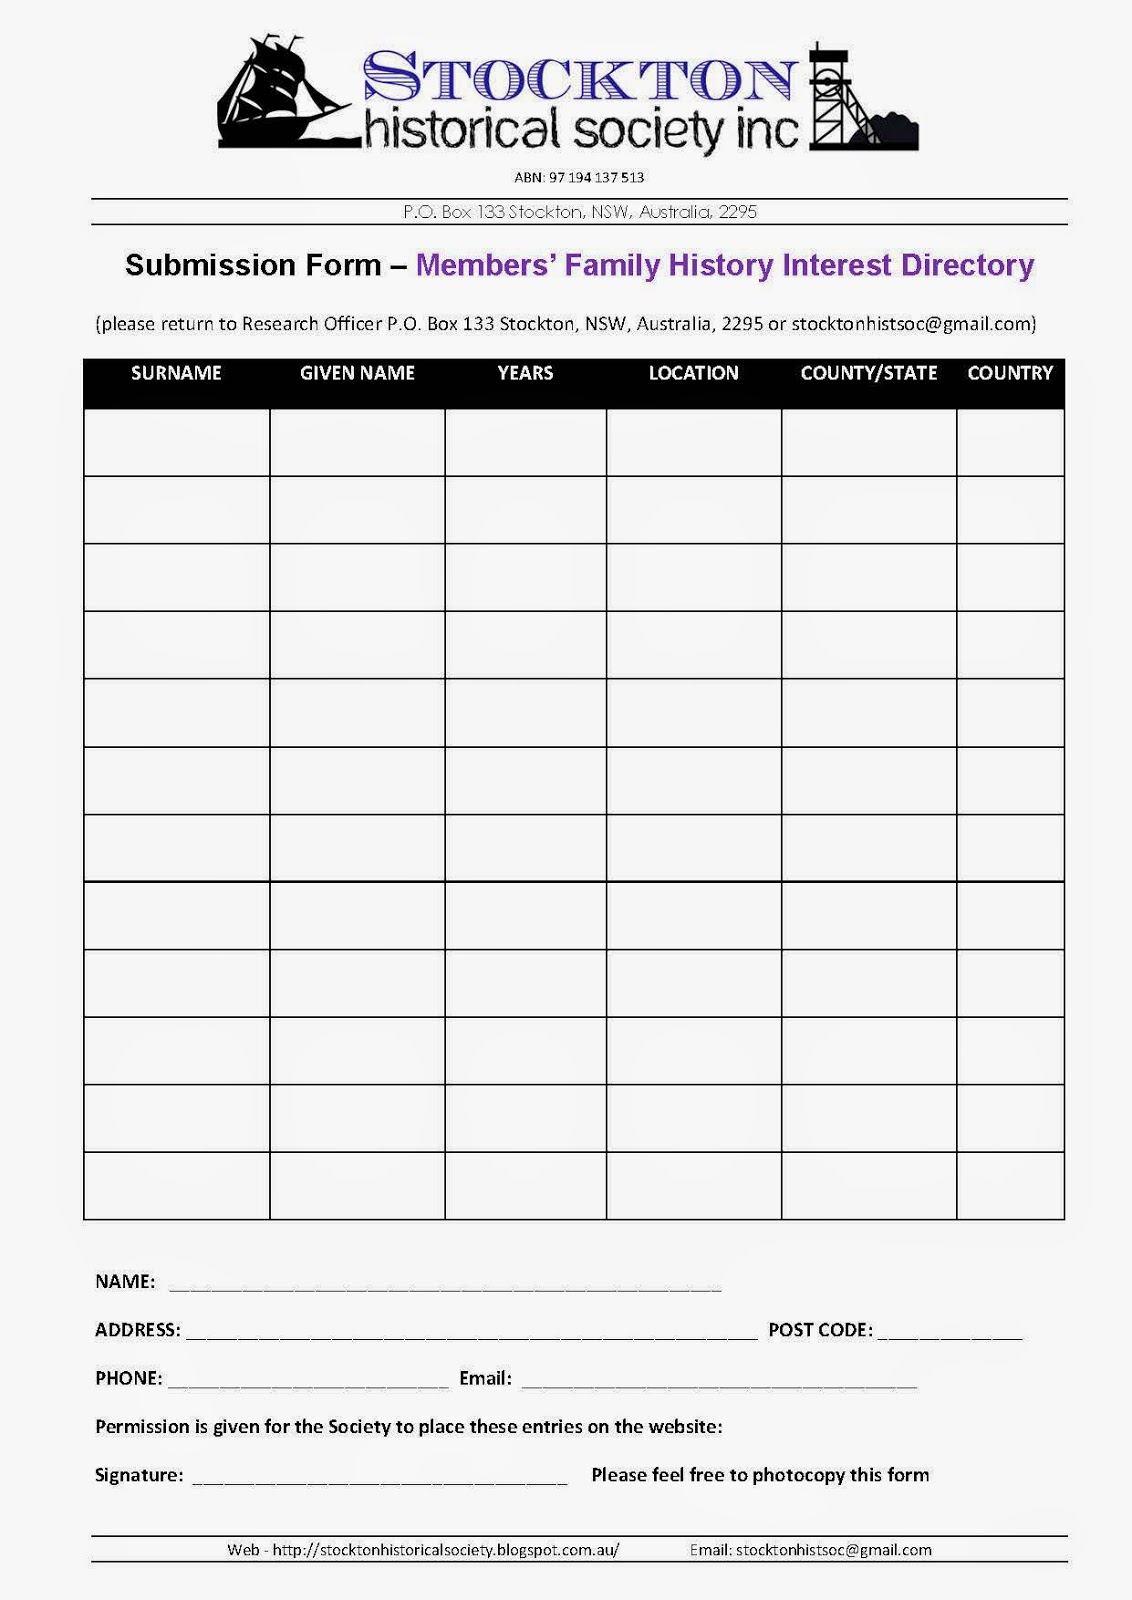 Stockton Historical Society Inc: Member Interest Forms Now Working